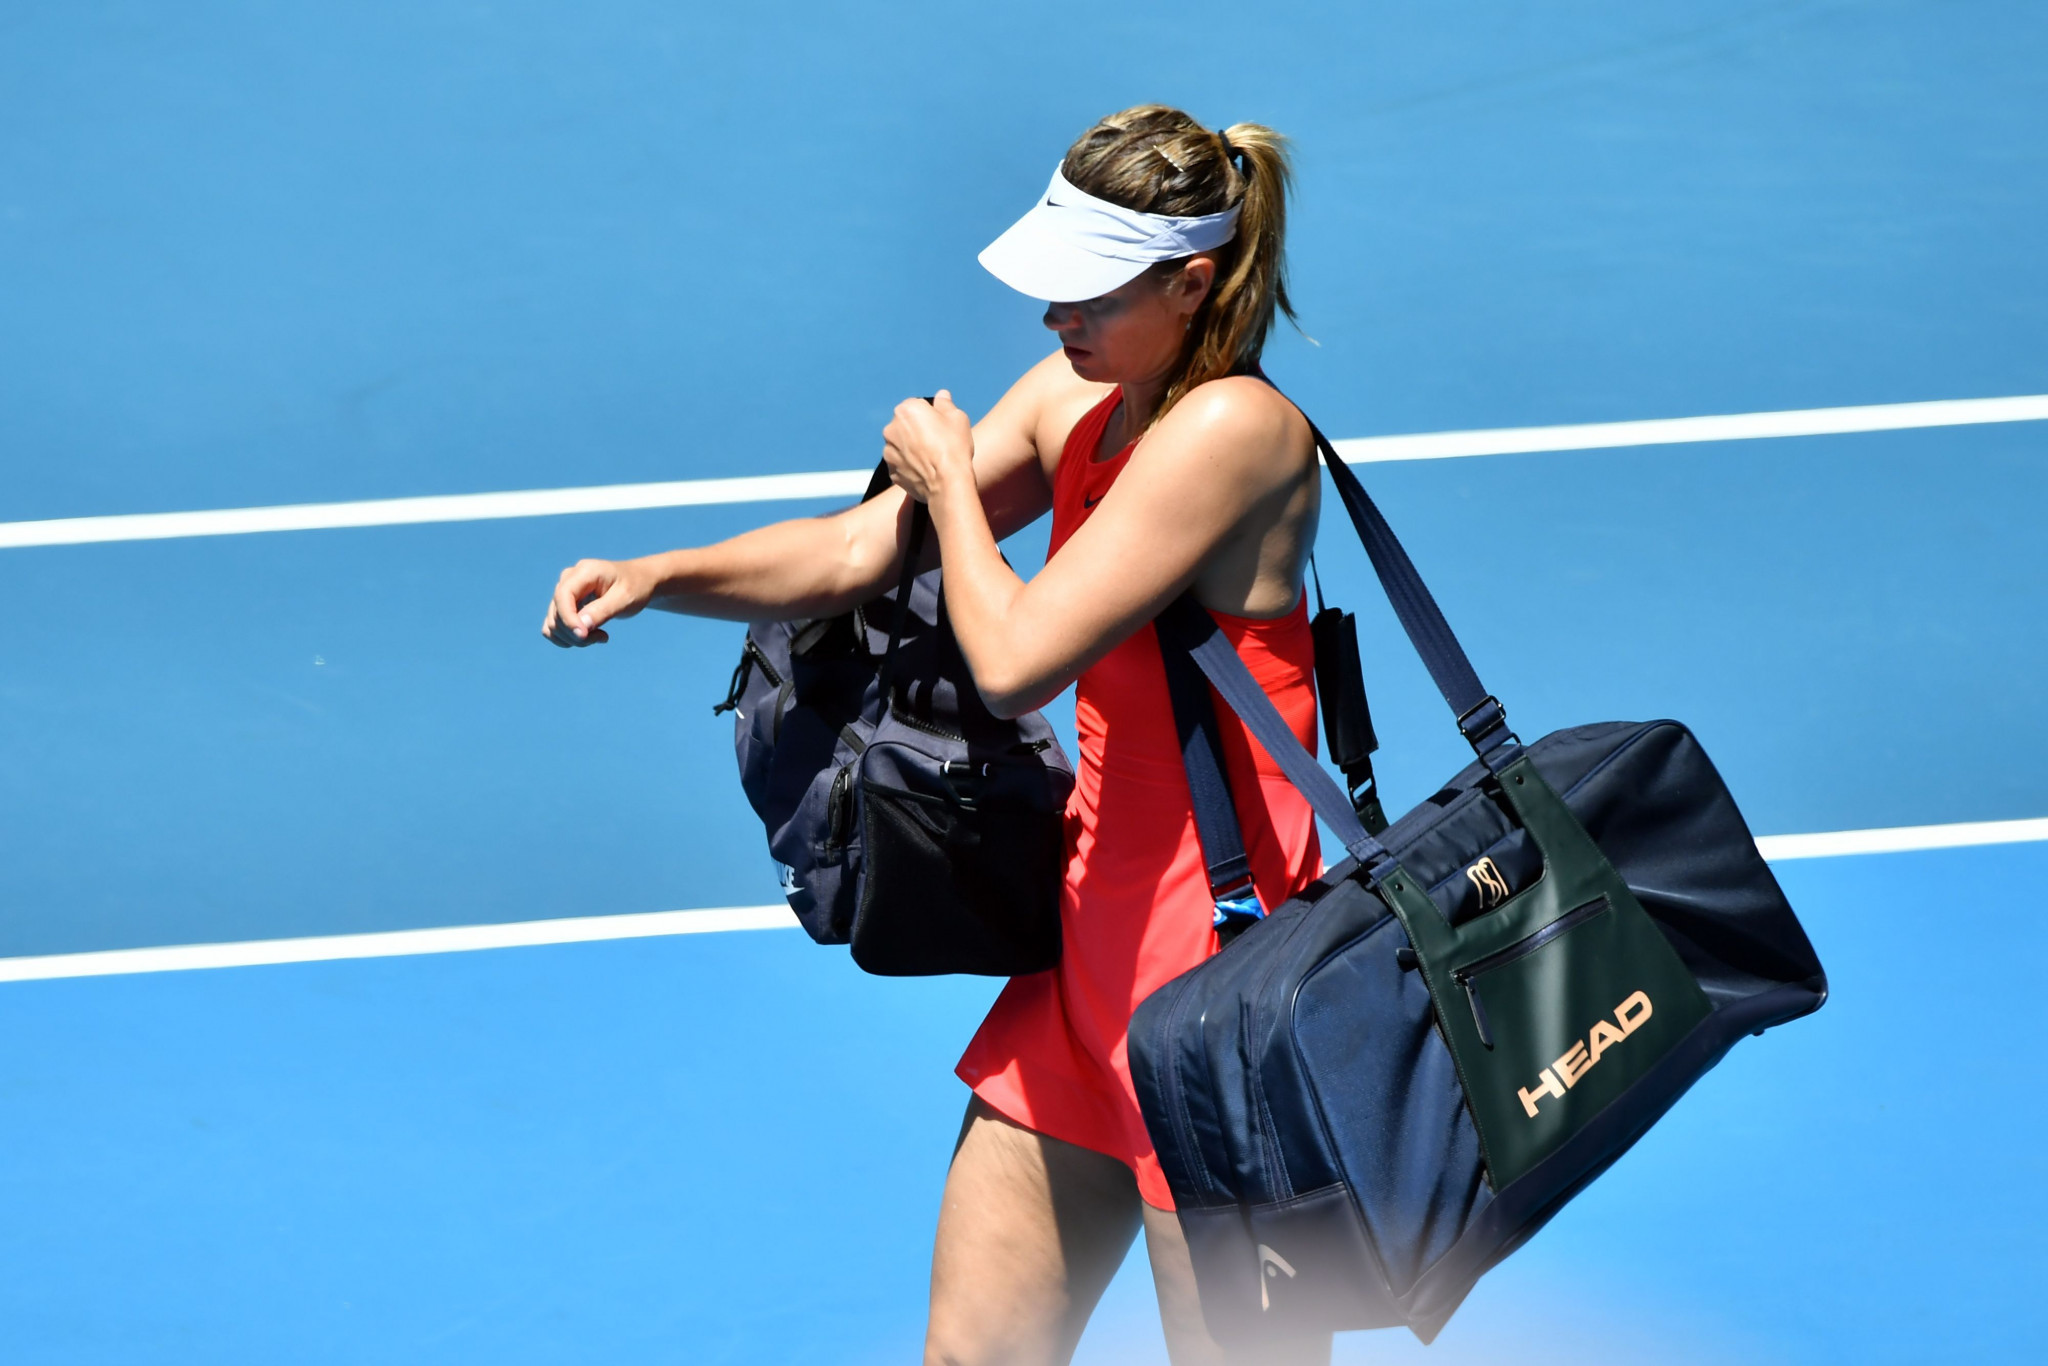 Maria Sharapova admitted she may not return to the Australian Open following her defeat ©Getty Images